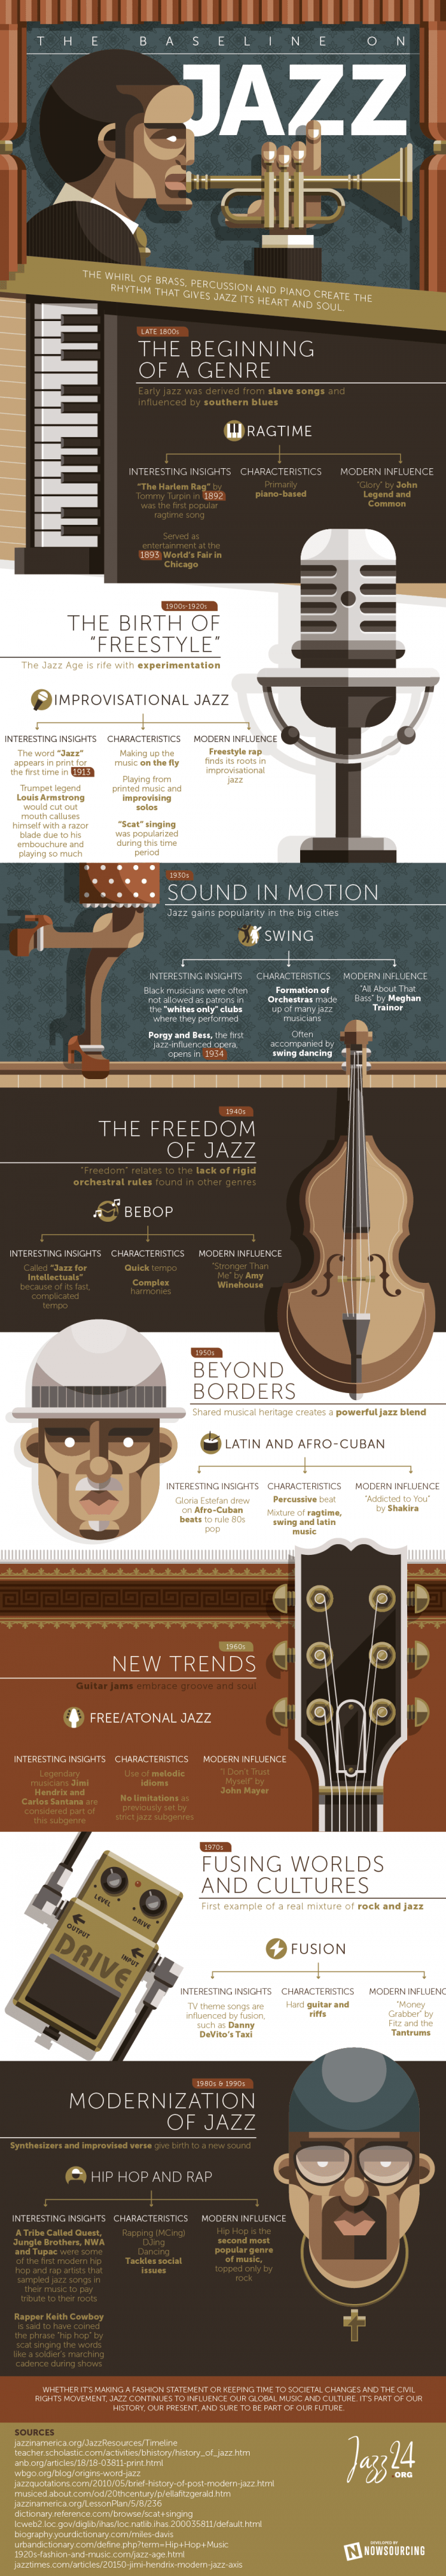 Picture shows the history of jazz and its subgenres.